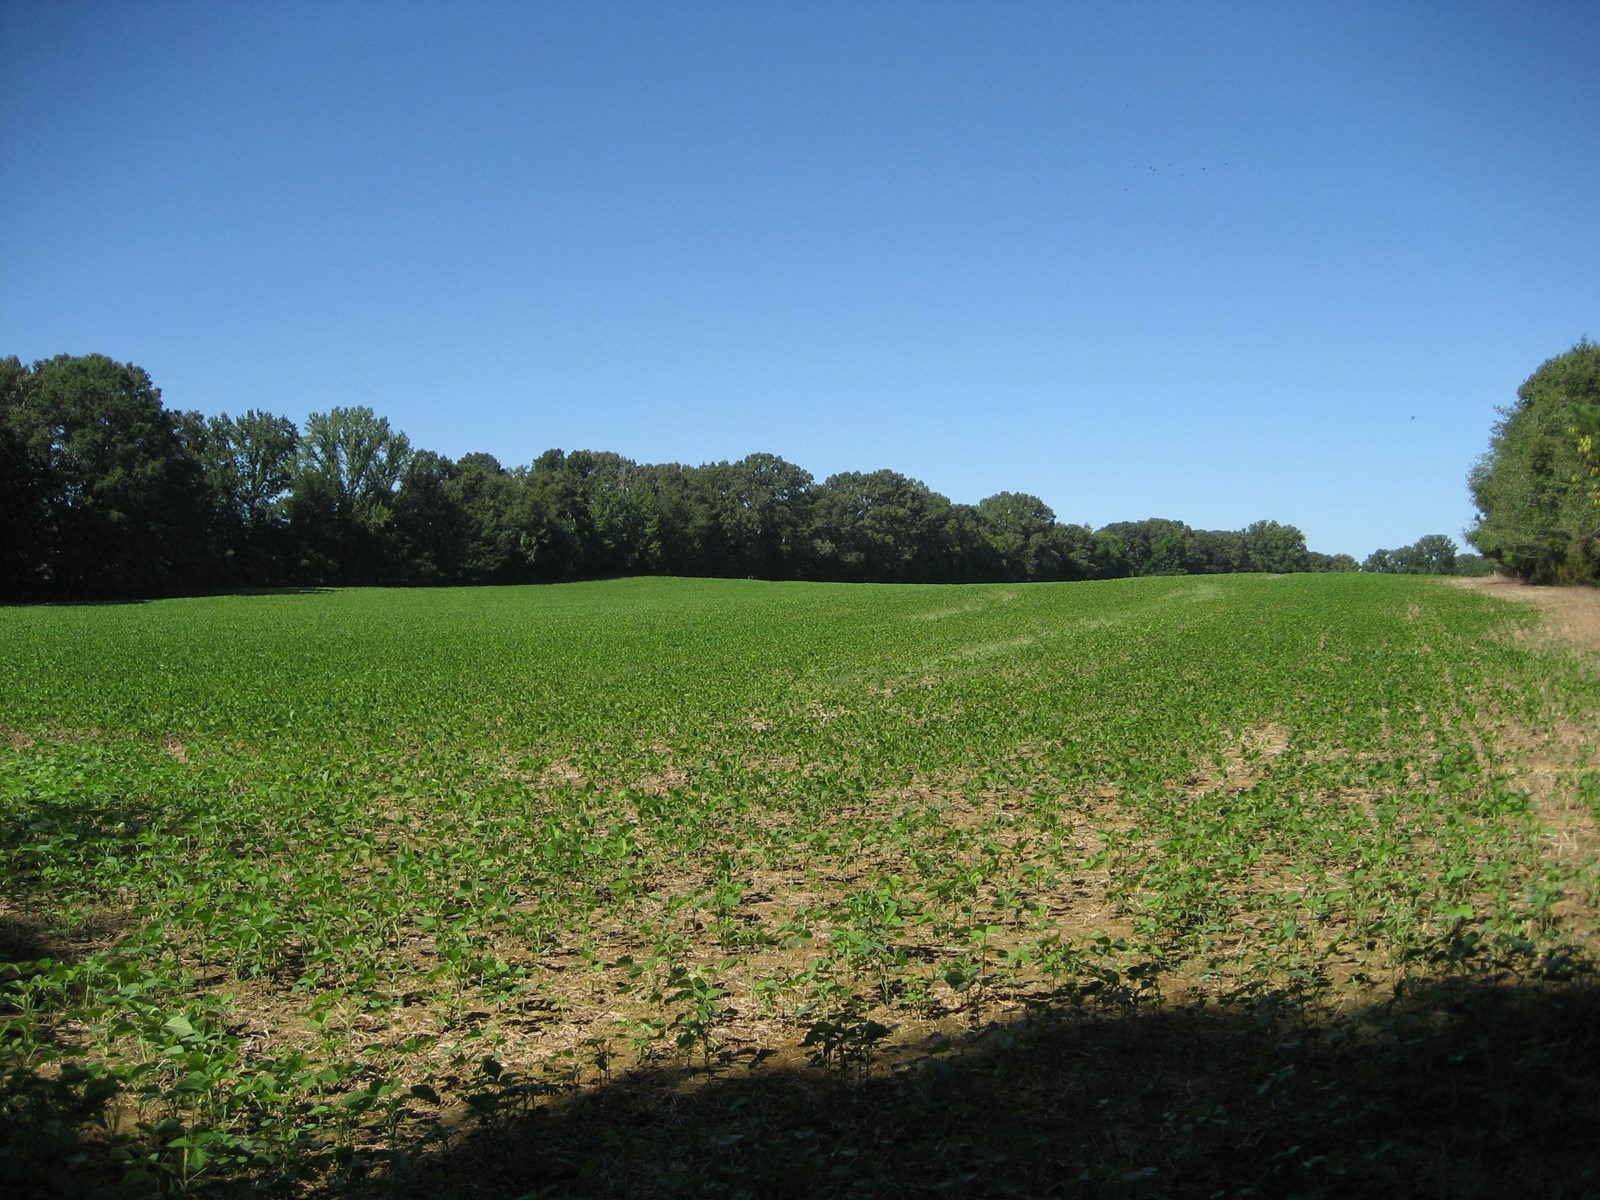 FARM FOR SALE IN TN, ROW CROP FARM, LAKE, NO RESTRICTIONS